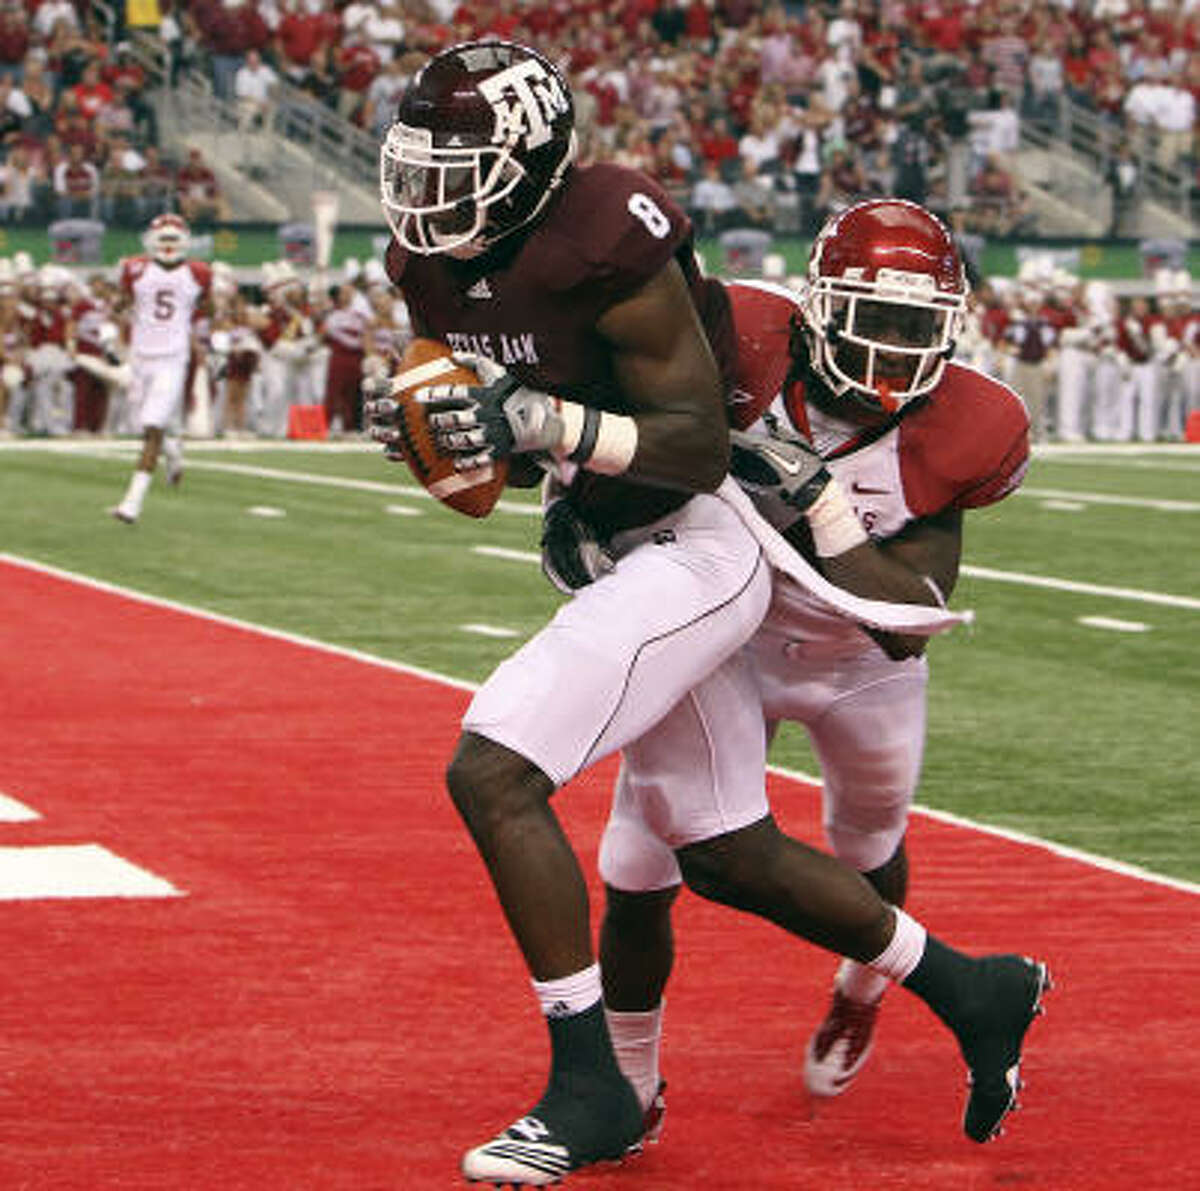 Texas A&M wide receiver Jeff Fuller snags a pass for touchdown in the closing seconds of the first half.